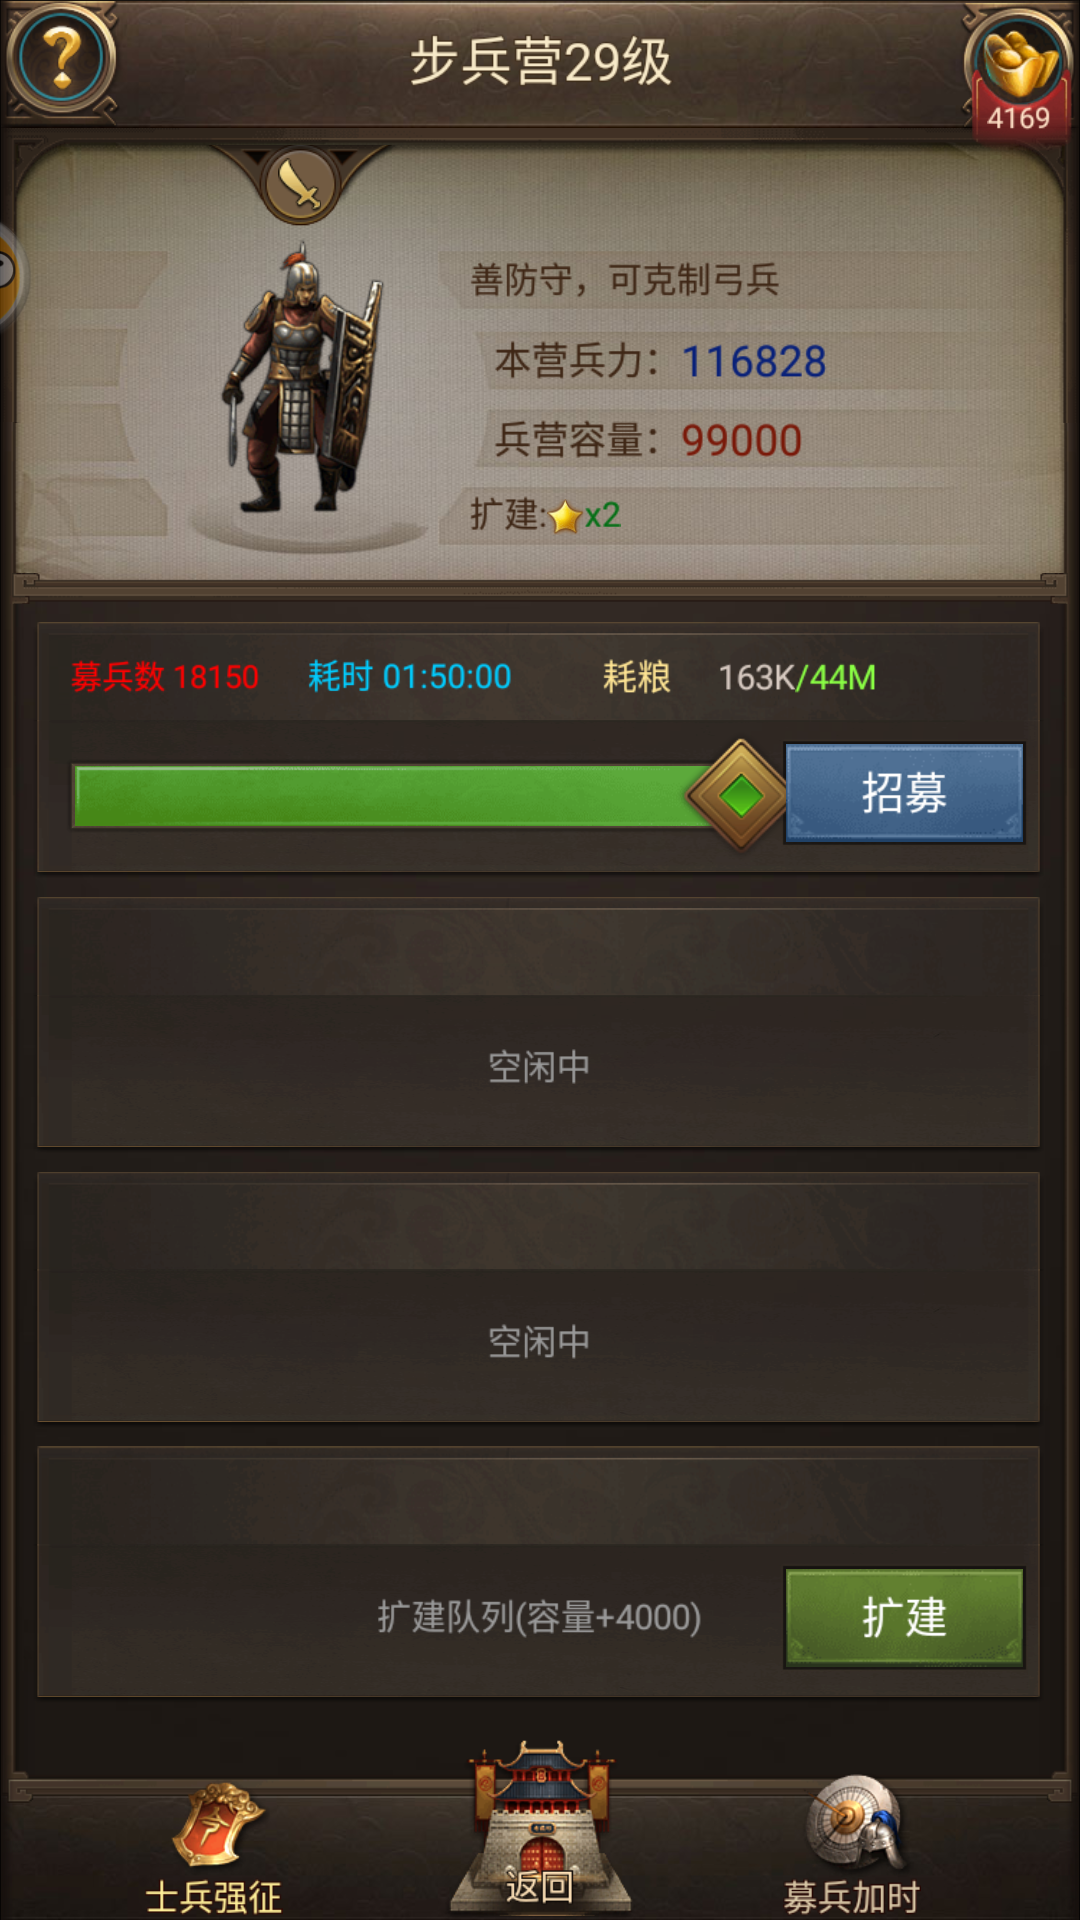 Screenshot_2019-07-11-07-09-56-865_com.juedigame.sgdjl.shoumeng.png